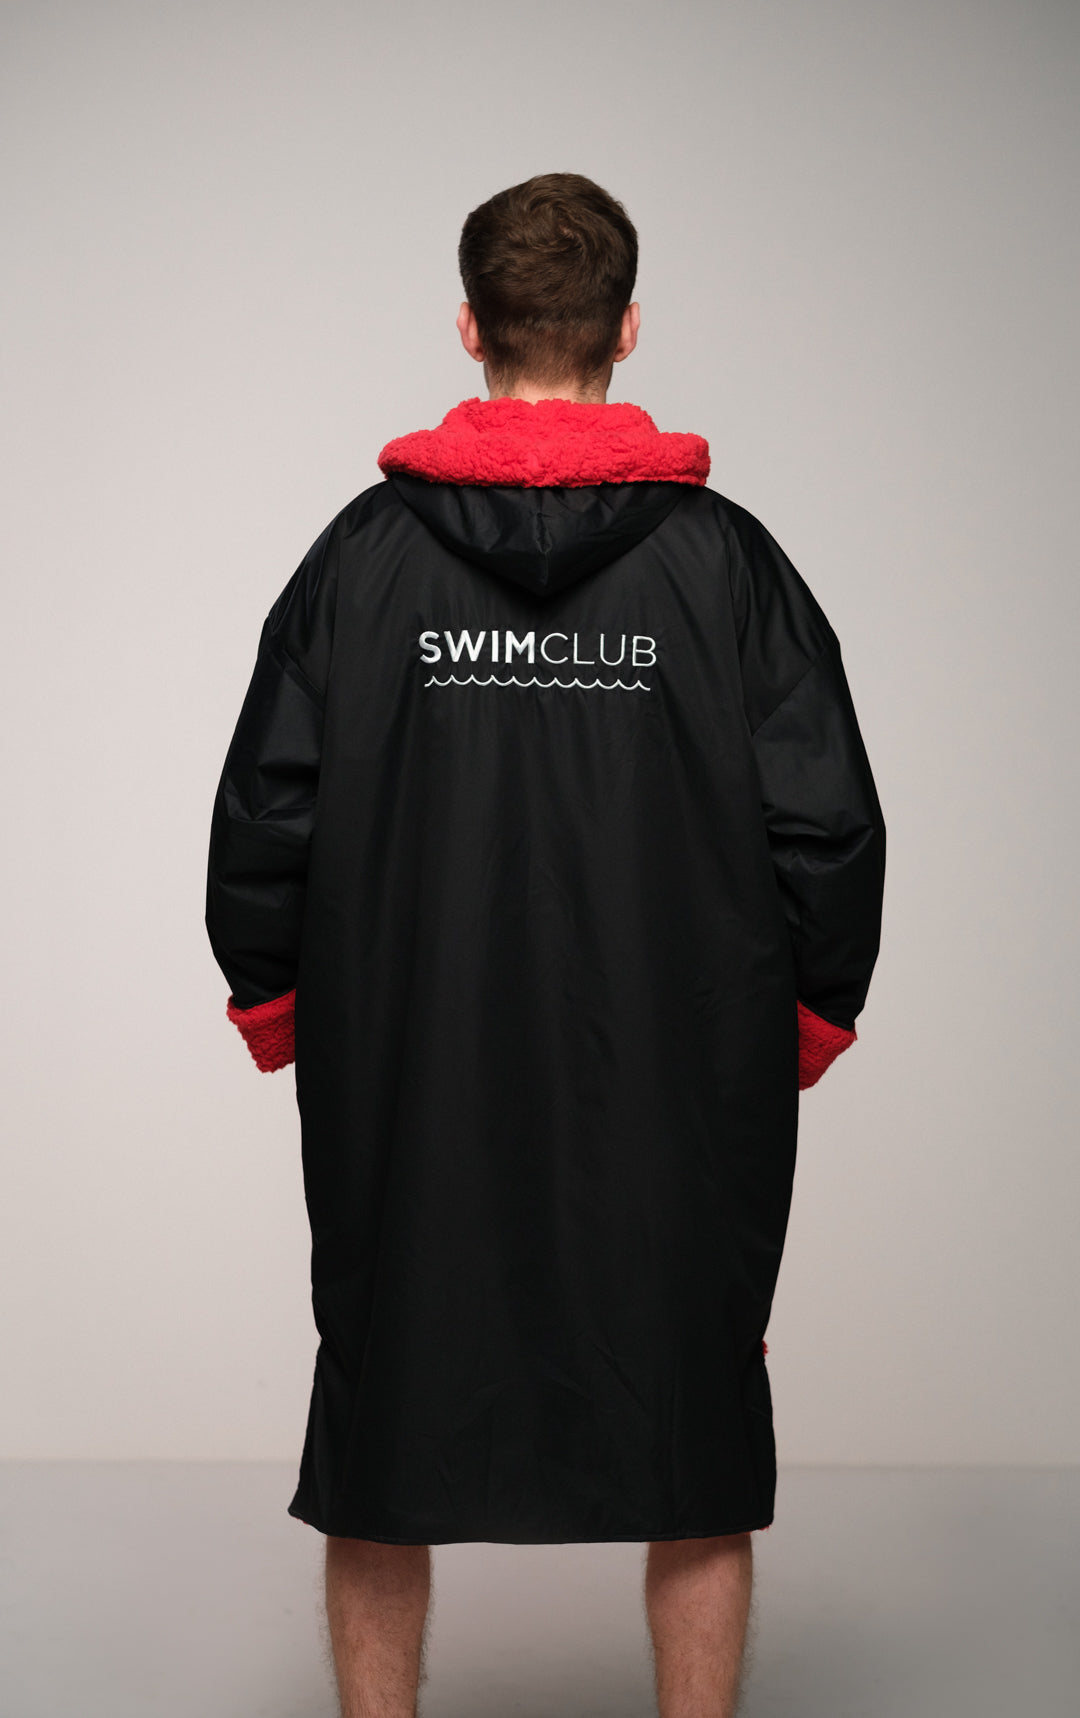 Swimclub Snug - Red